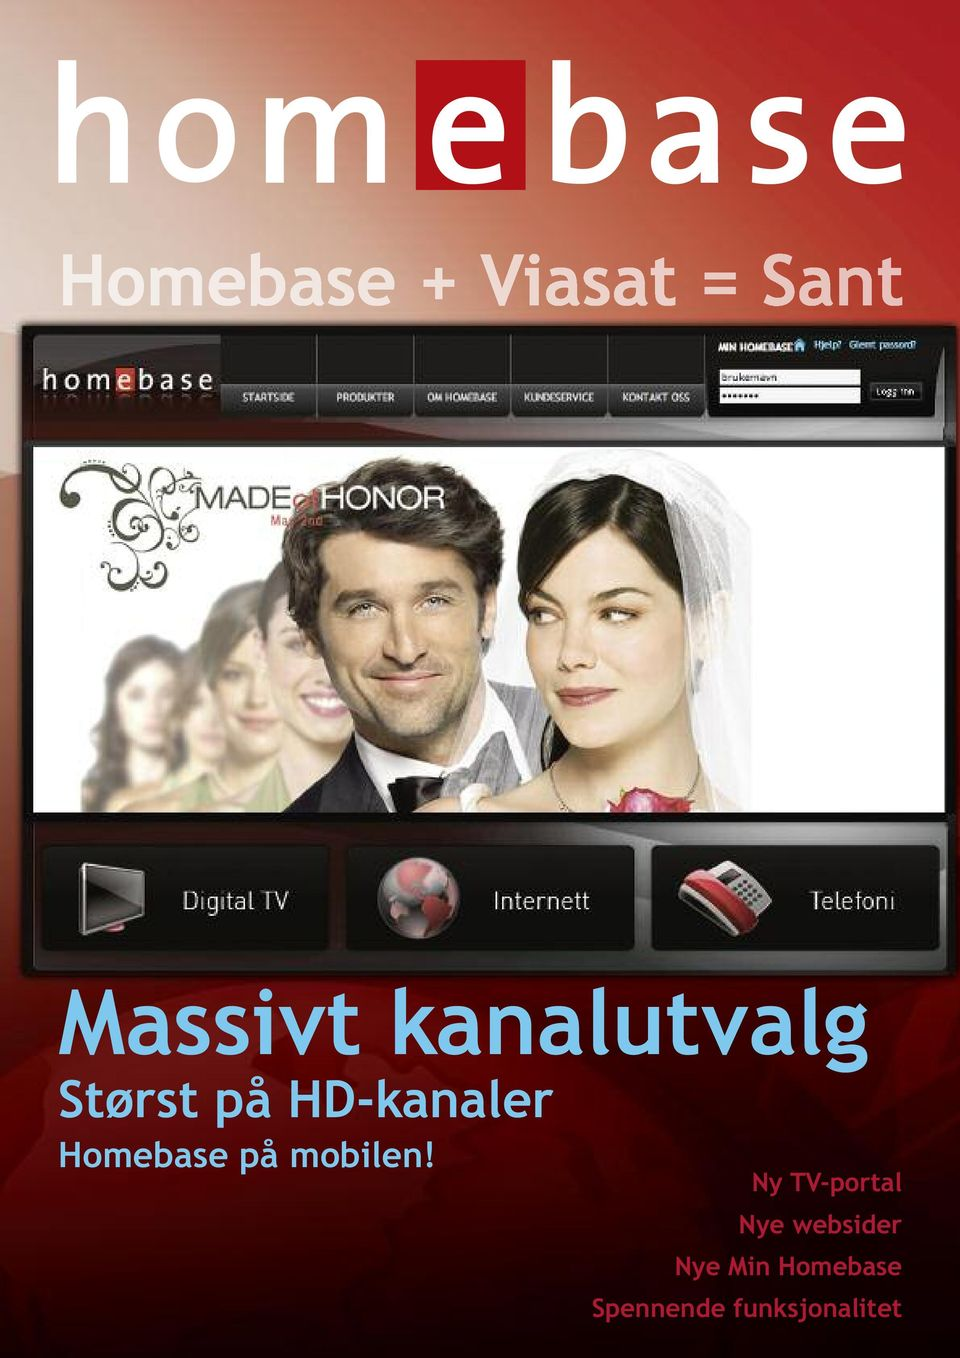 Ny TV-portal Nye websider Nye